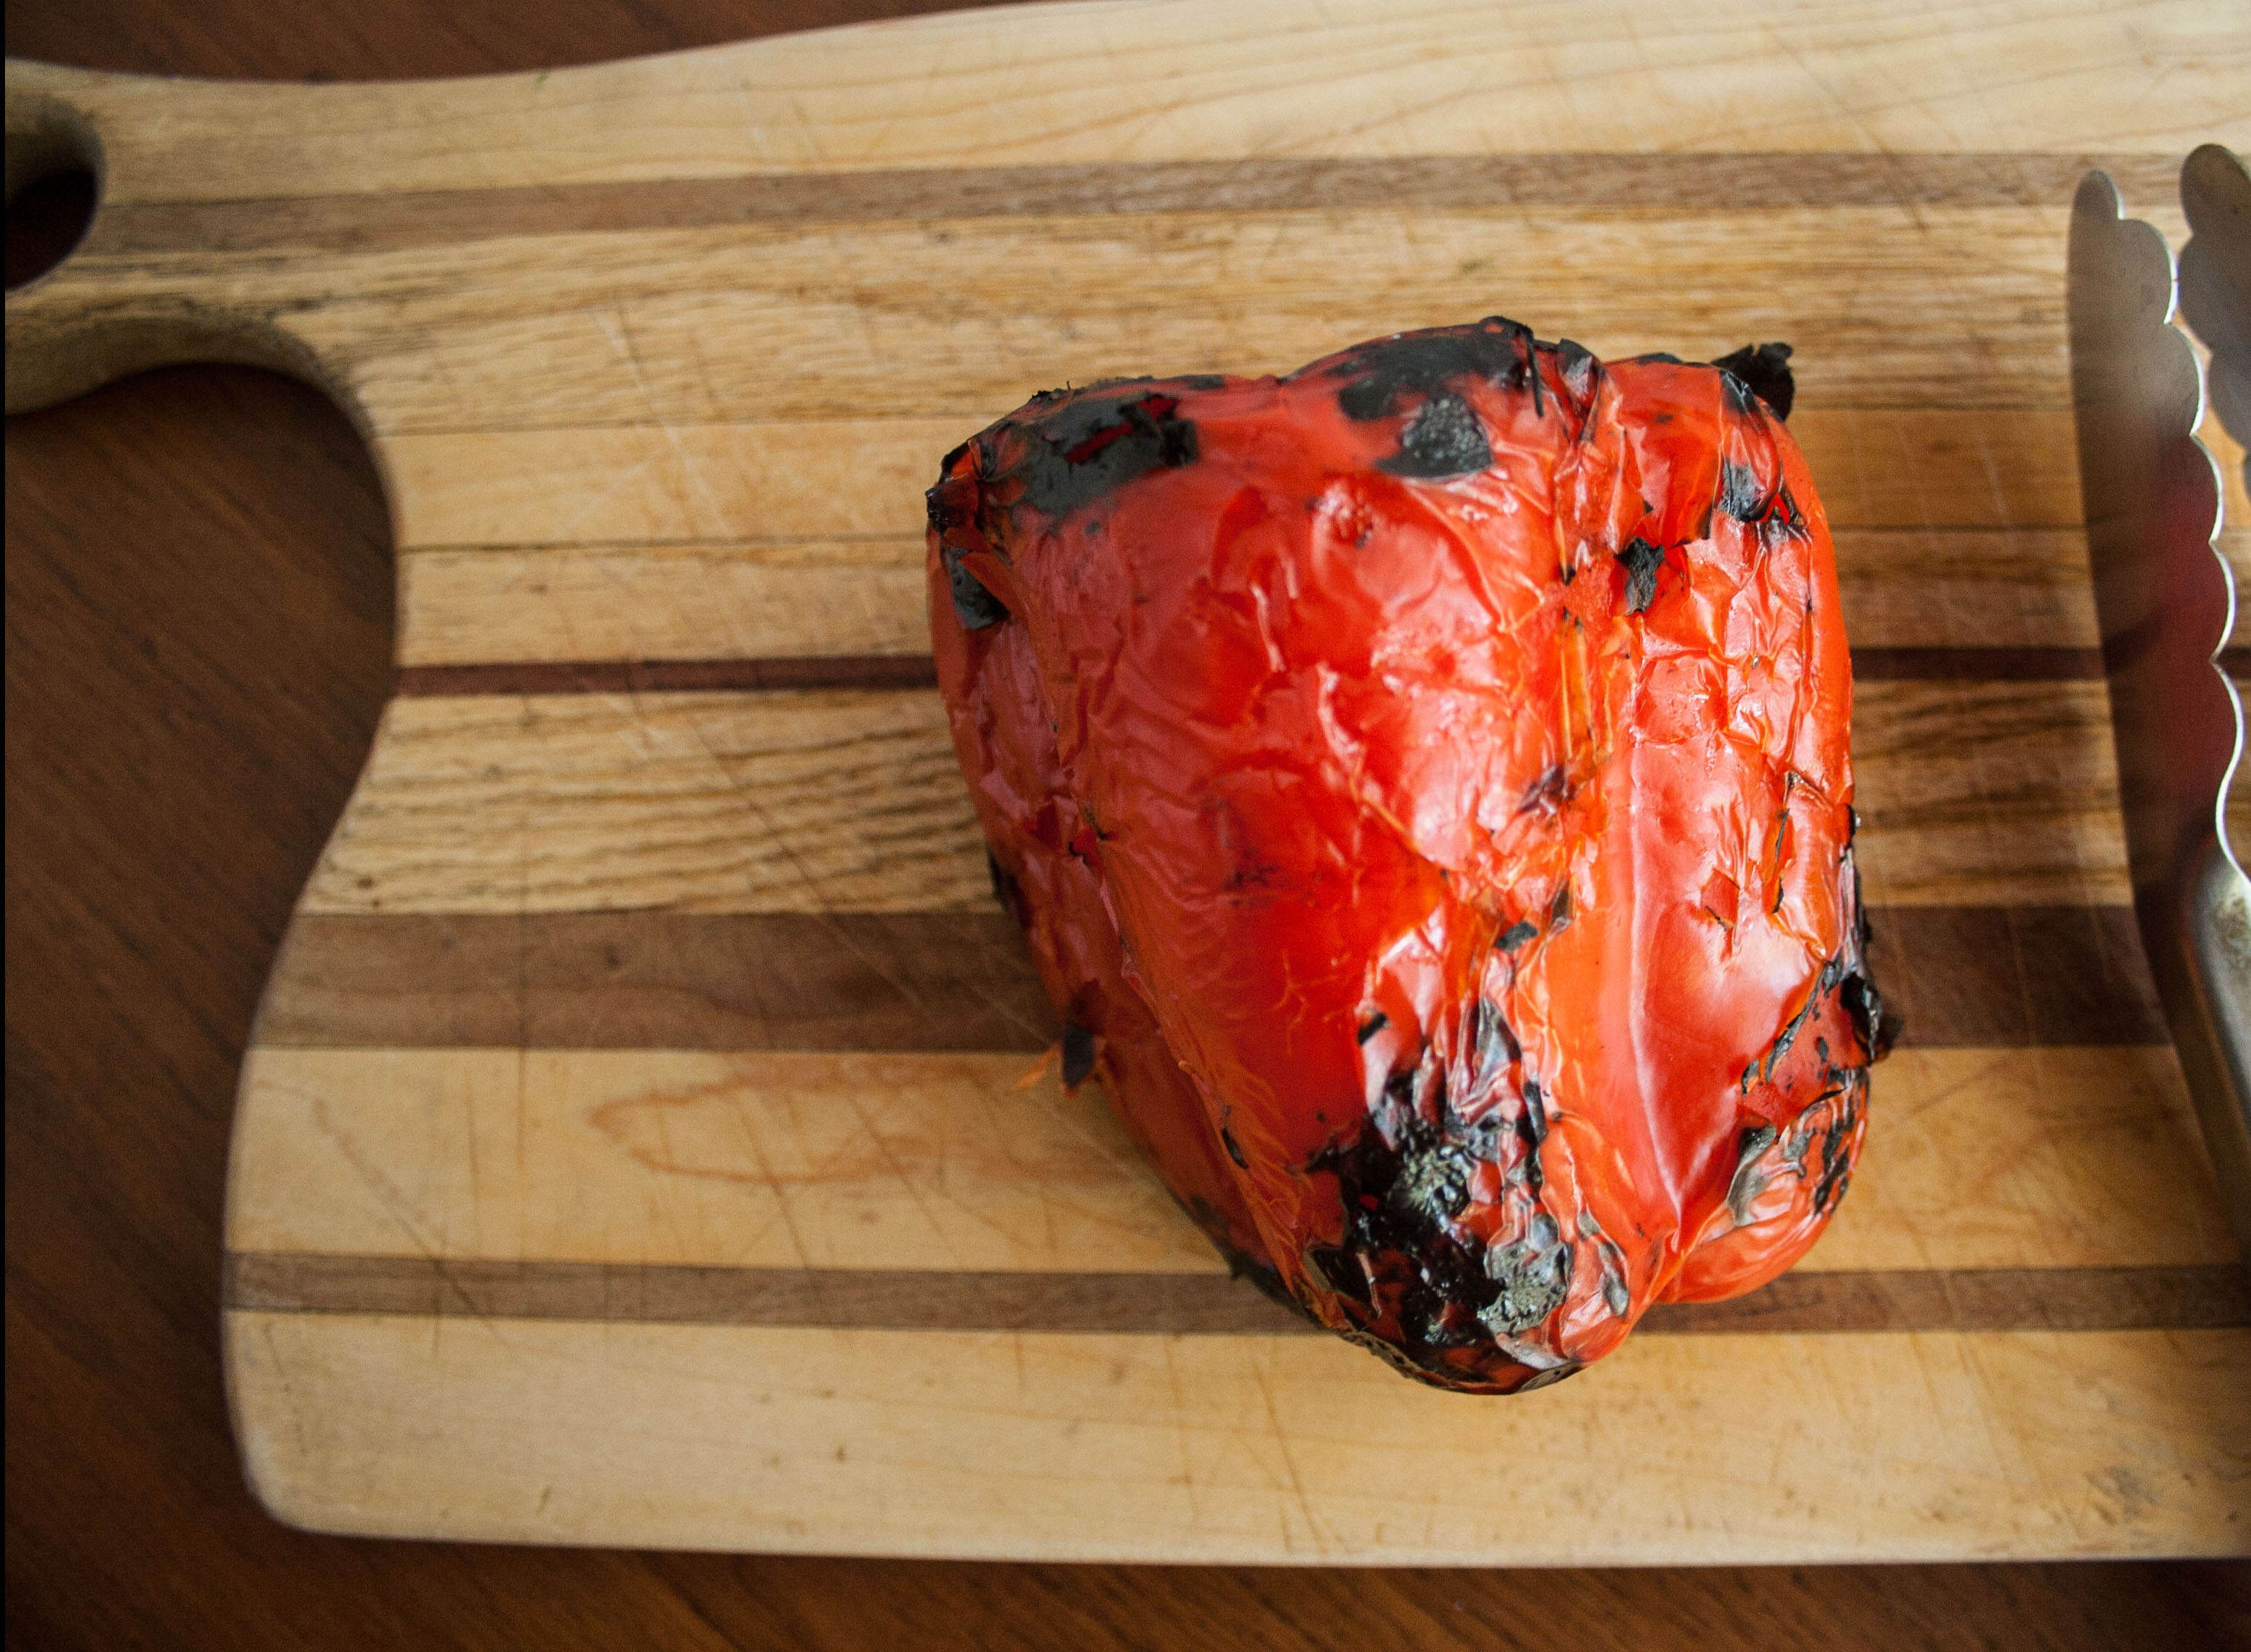 roasted red peppers on stovetop finished product